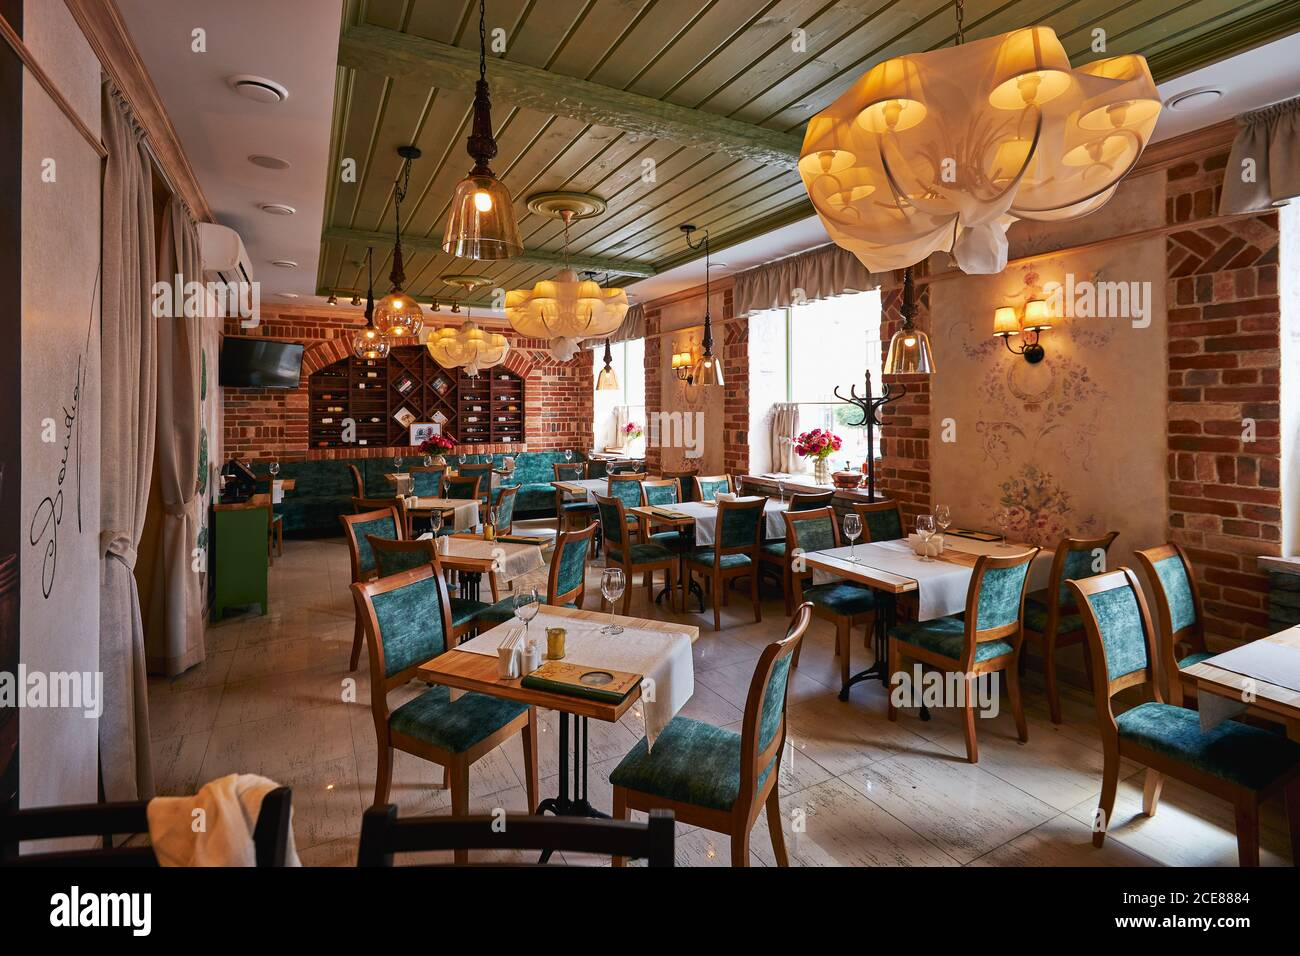 Luxury Italian Design Interior High Resolution Stock Photography And Images Alamy